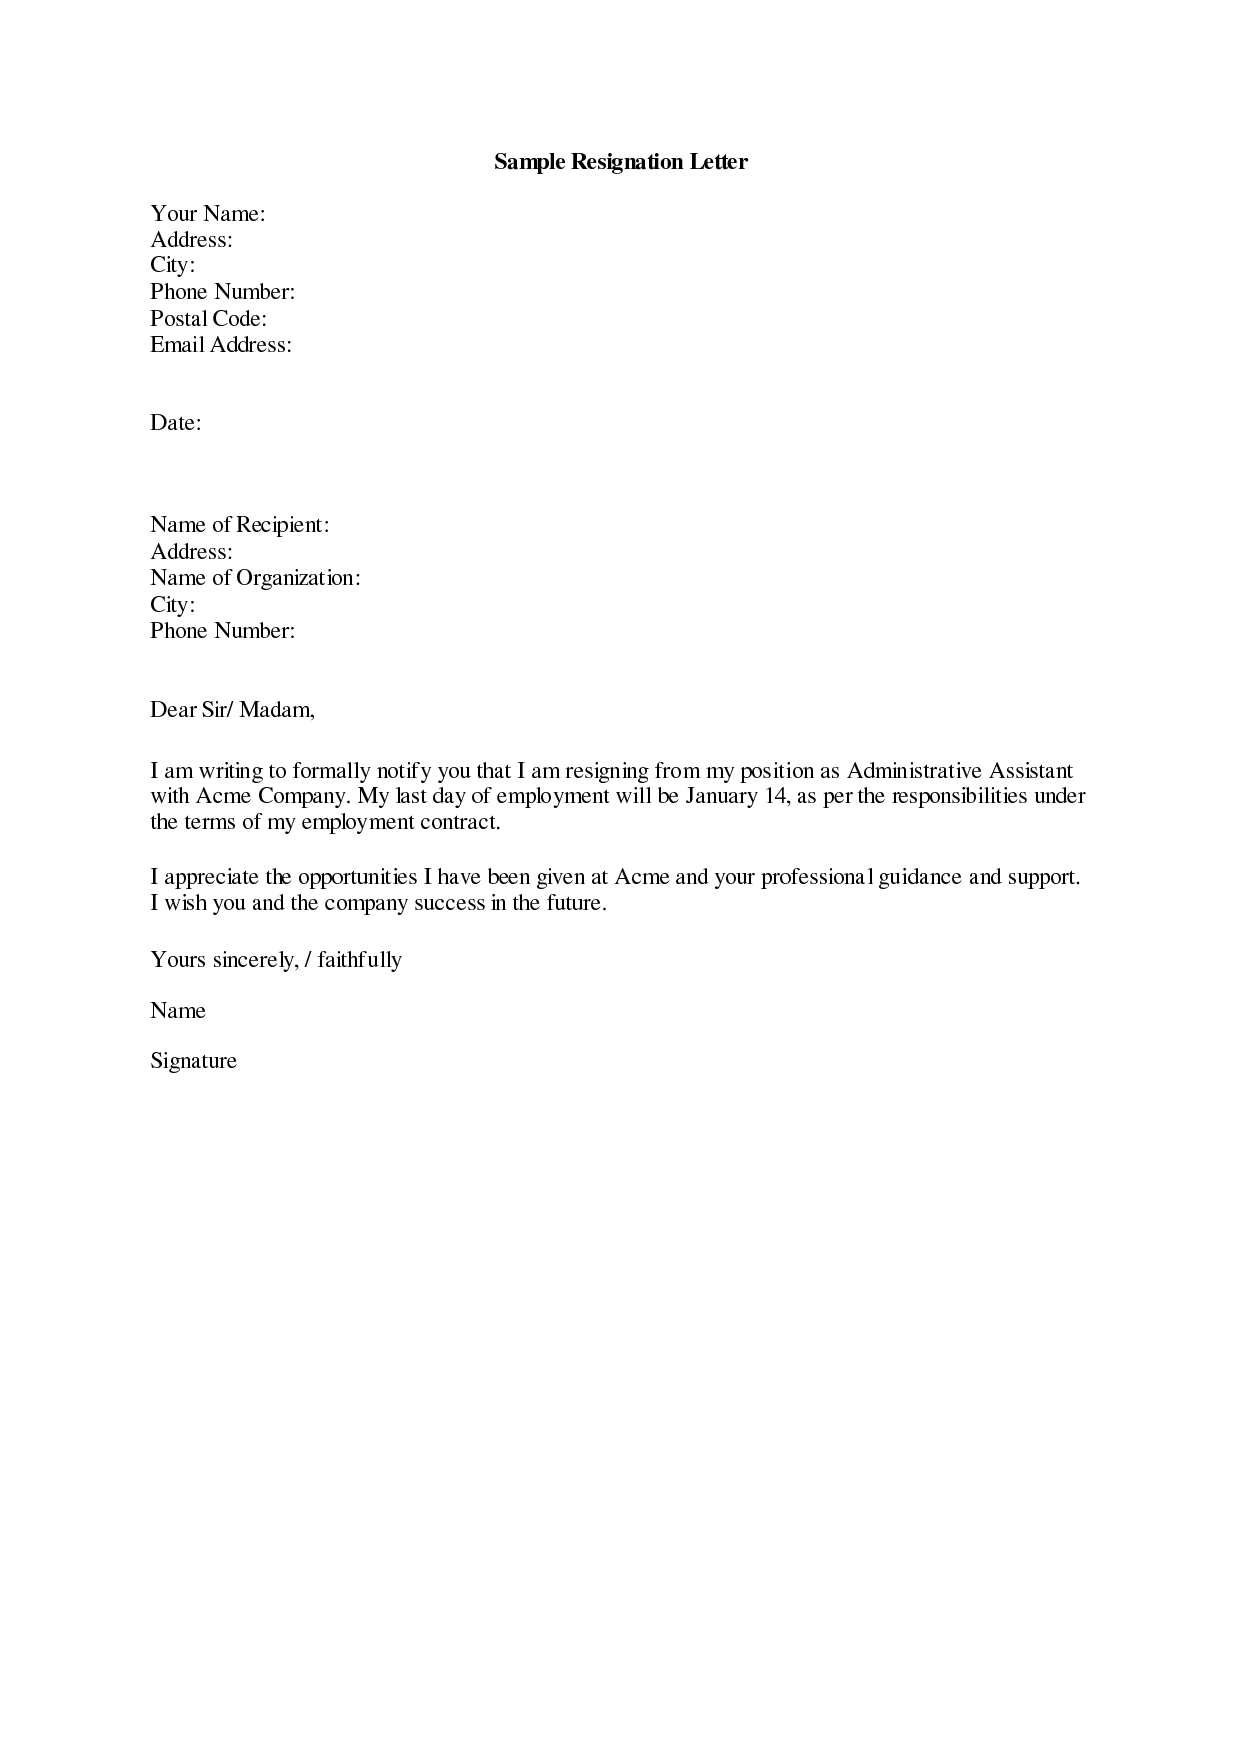 resignation letter template google search employment letter of resignation samples template seeabruzzoresignation letter sample business letter sample